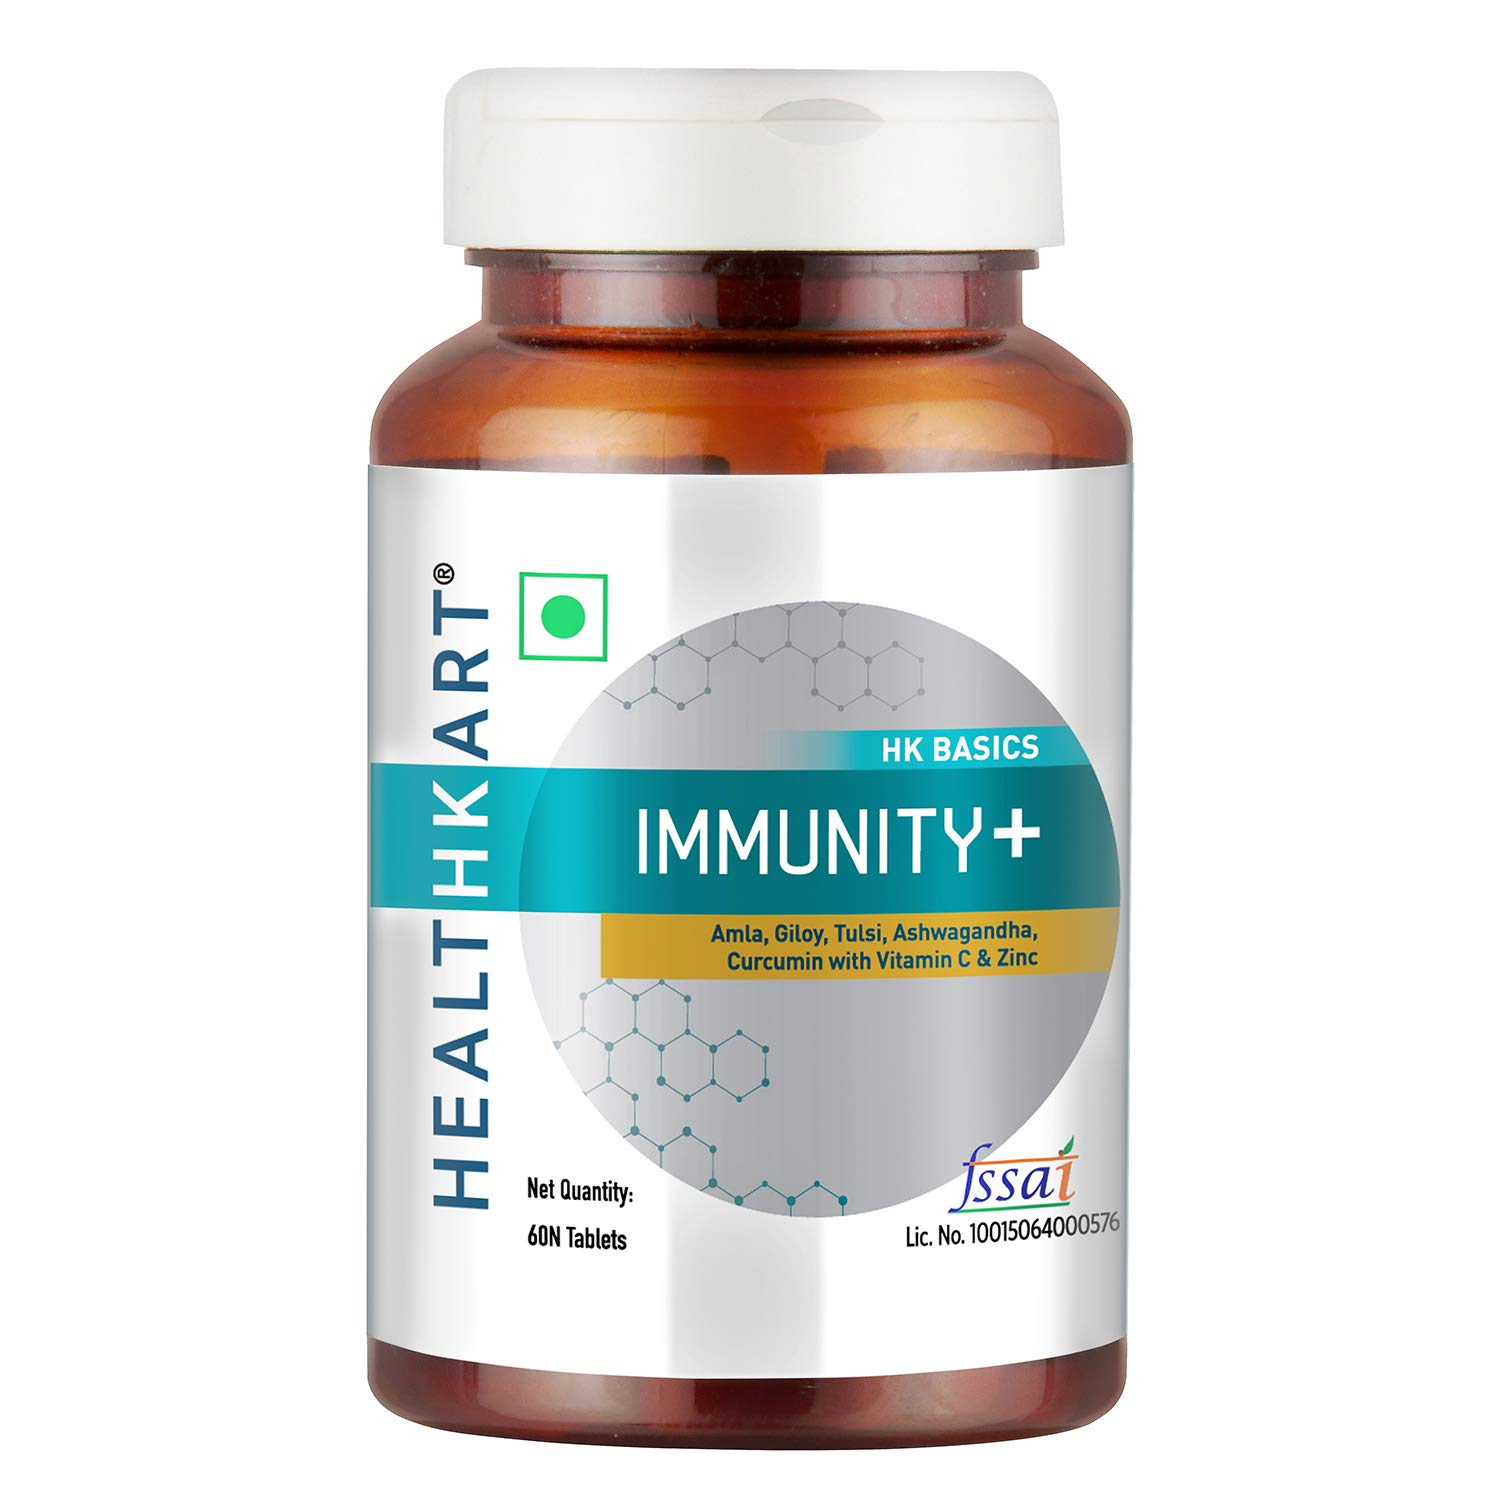 HealthKart Immunity + booster with Vitamin A,B6,C,E, D, Zinc & Immunity blend of Amla, Giloy, Tulsi, Ashwagandha extracts, 60 Tablets, Unflavoured